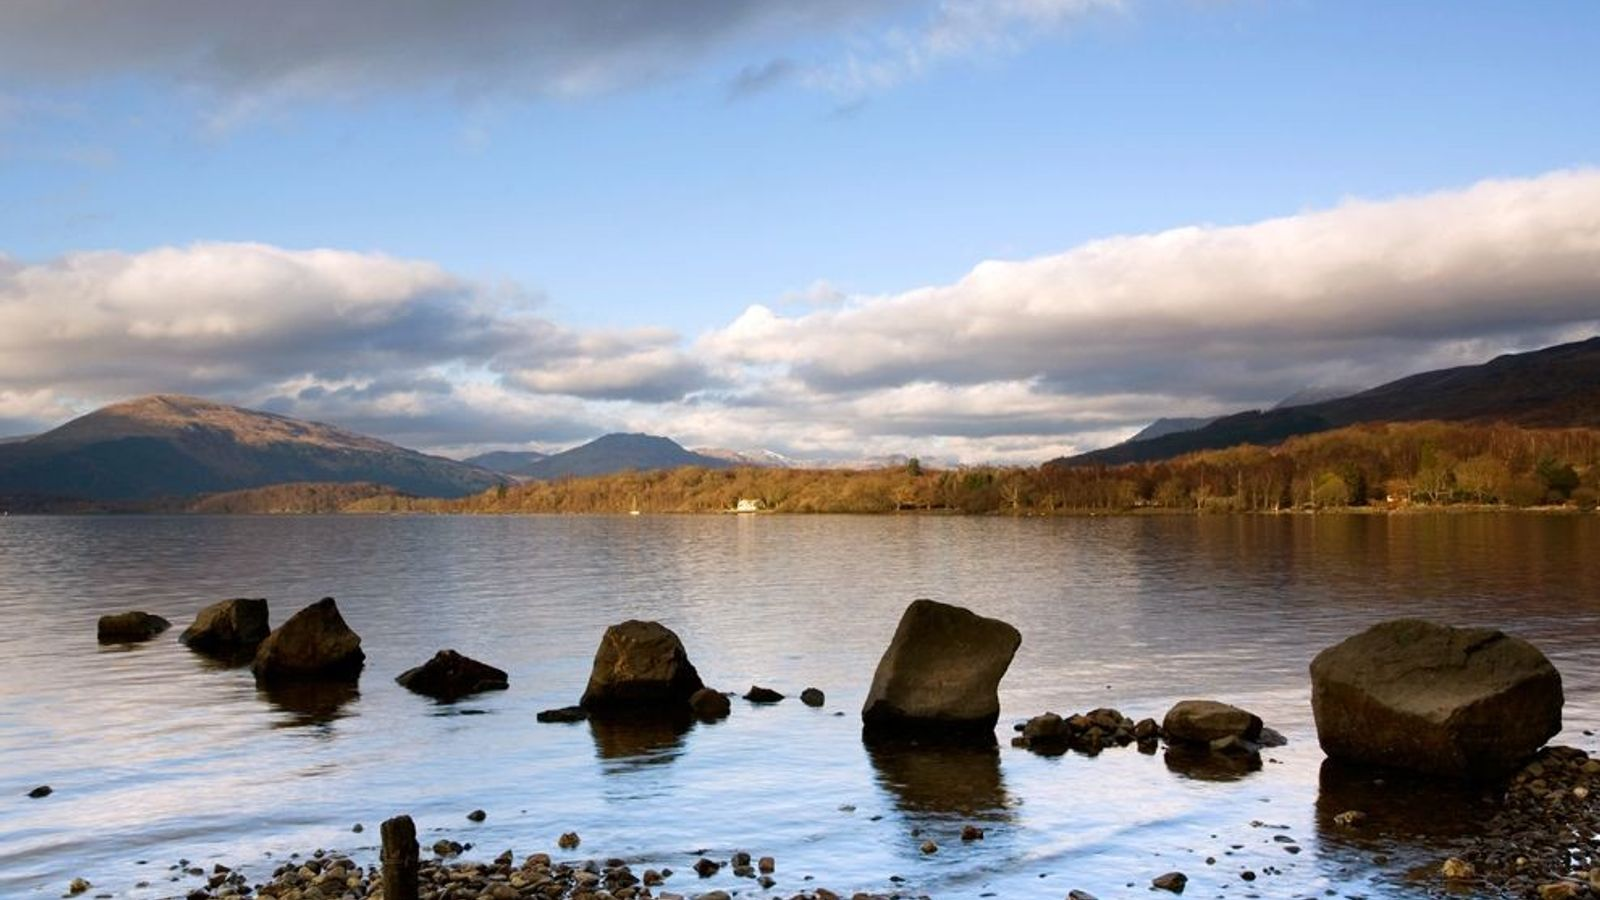 Rocks lead out to Milarrochy Bay in Loch Lomond, the largest lake in Great Britain.